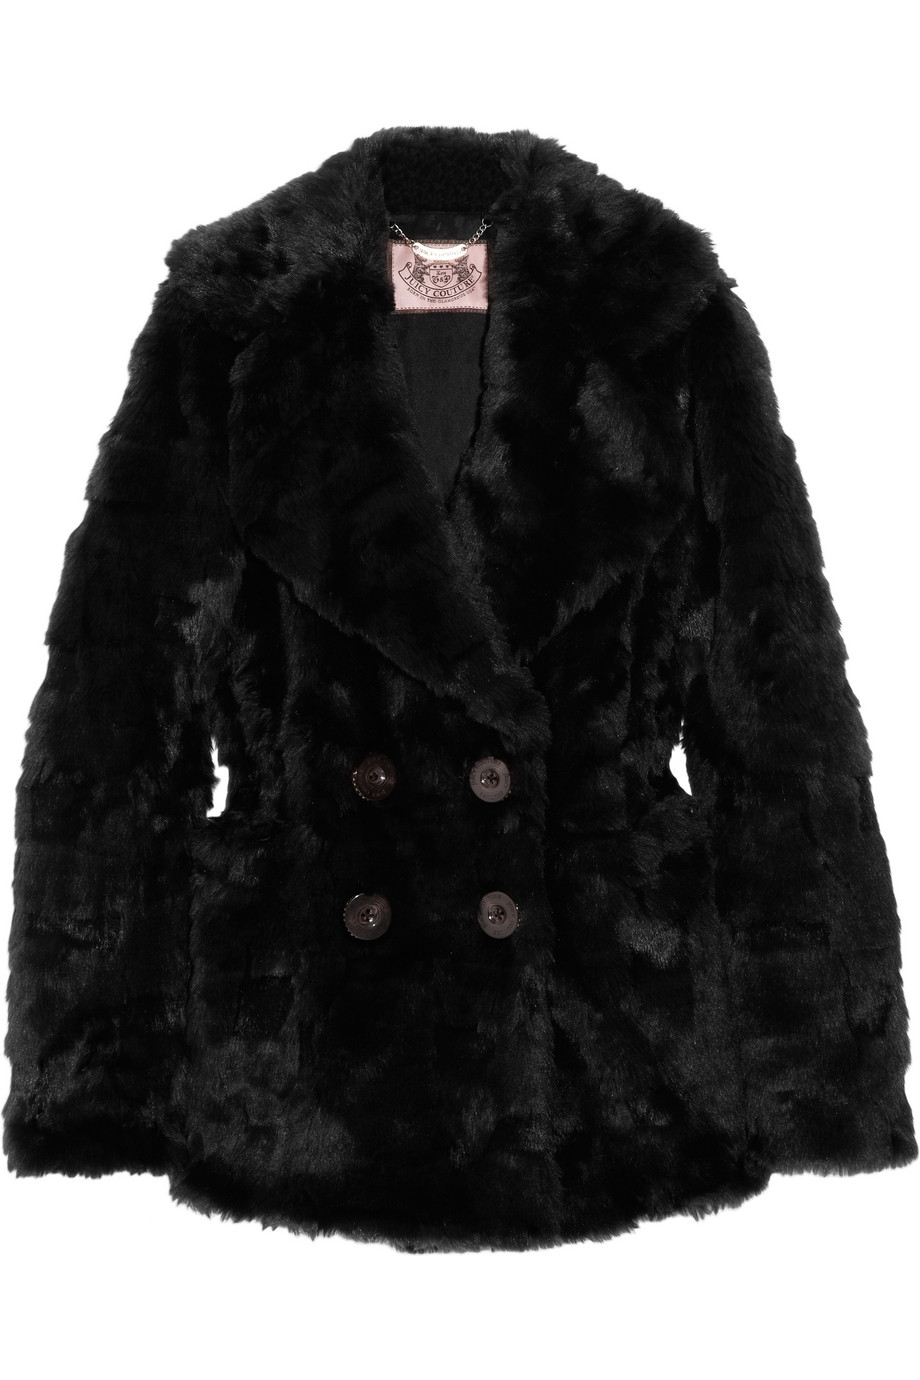 Online shopping for Clothing & Accessories from a great selection of Fur, Faux Fur & more at everyday low prices.